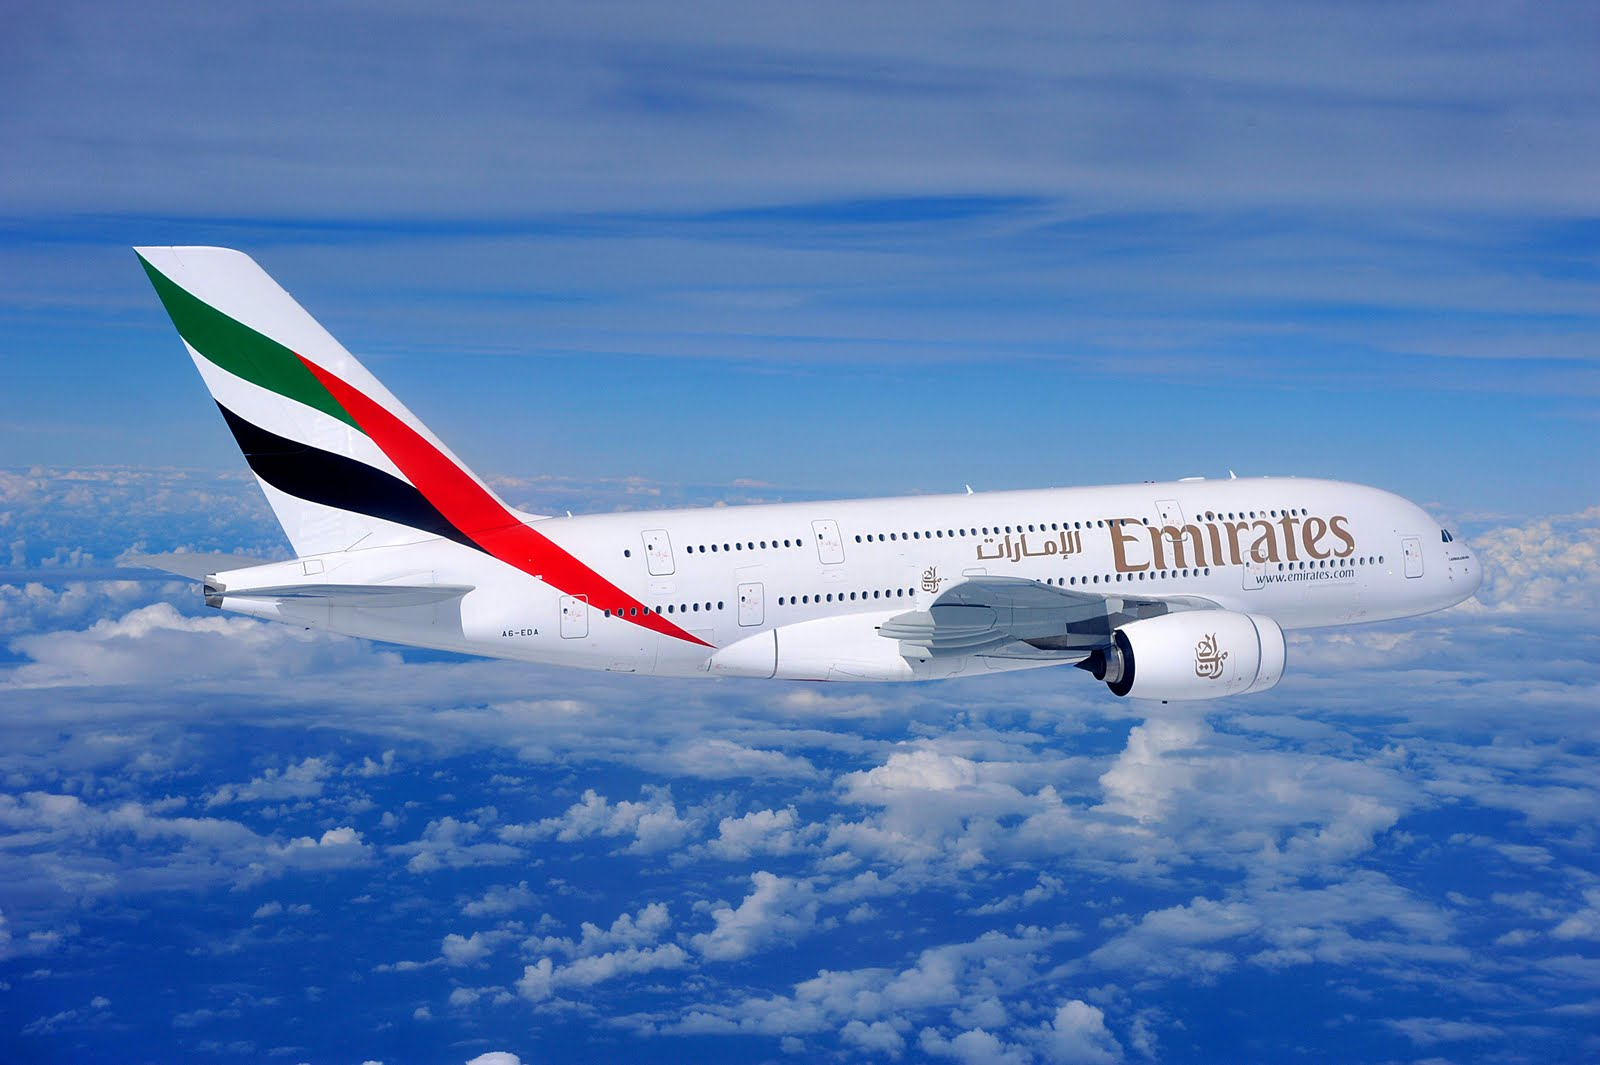 Emirates A380 aircraft in action